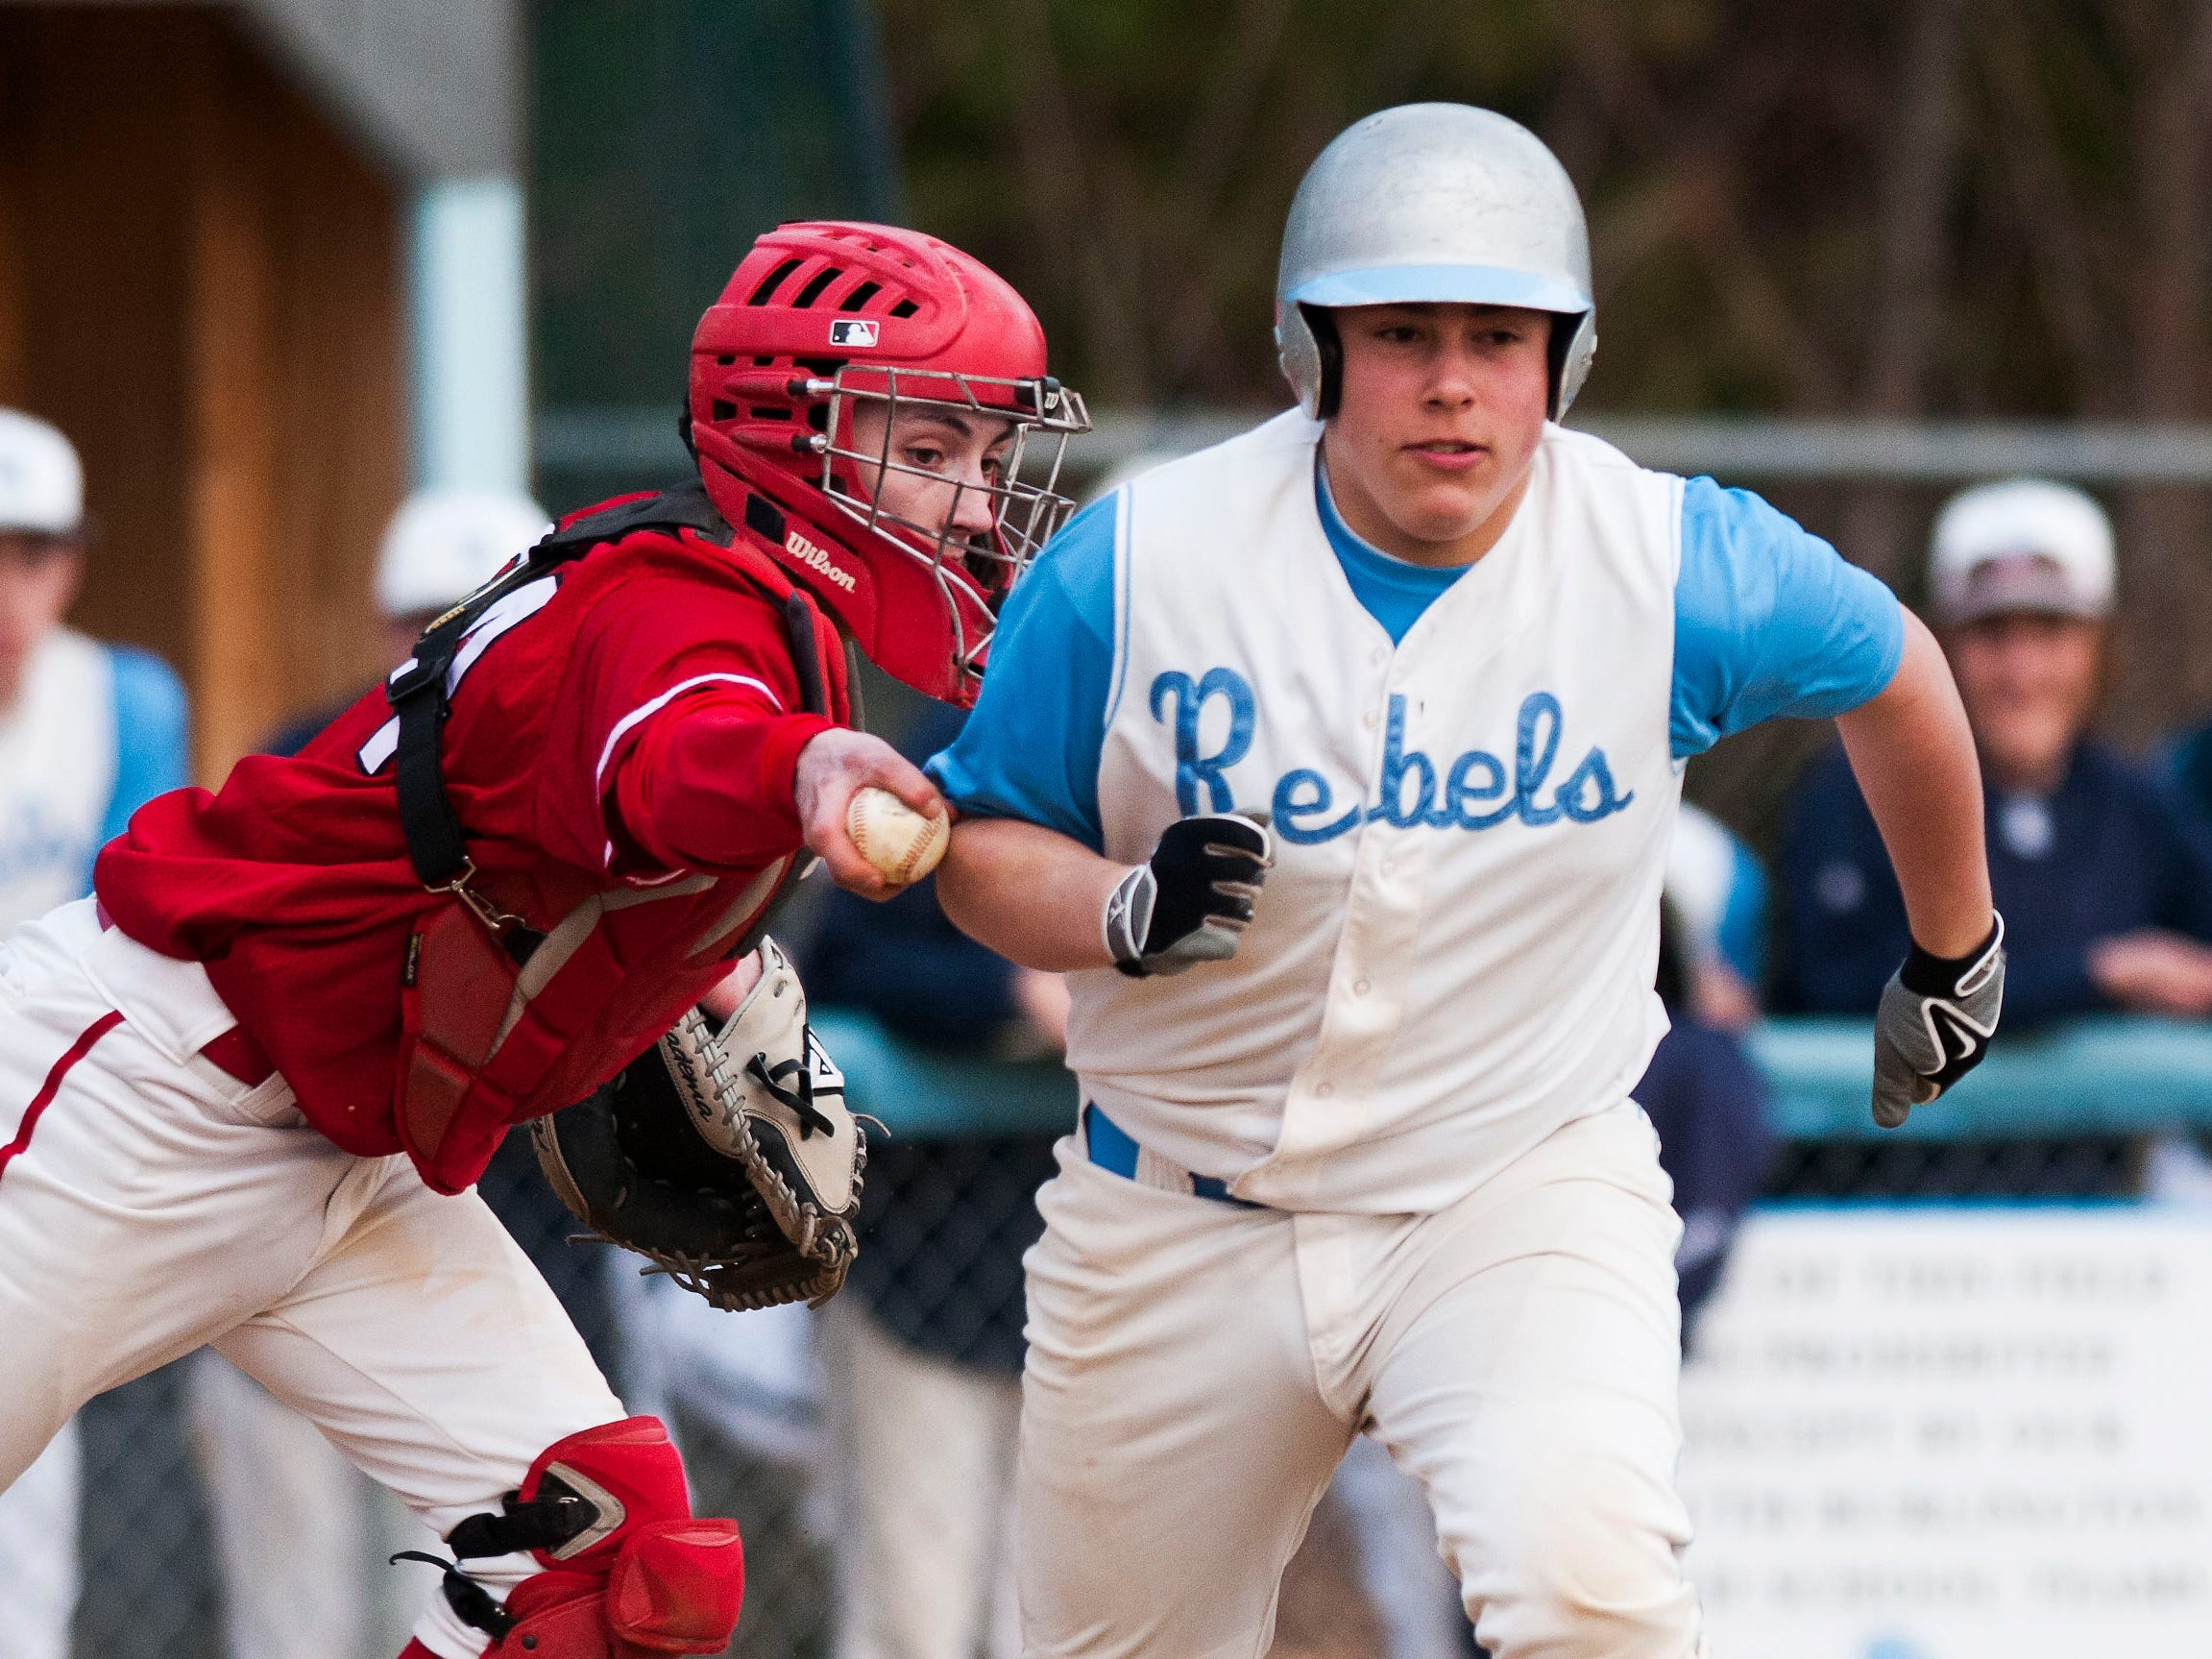 CVU catcher Dan Poodiack (24) tags out South Burlington's Steven Levite (22) during the boys baseball game between the Champlain Valley Union Redhawks and the South Burlington Rebels at Dorset park on Thursday afternoon April 16, 2015 in South Burlington, Vermont. (BRIAN JENKINS, for the Free Press)